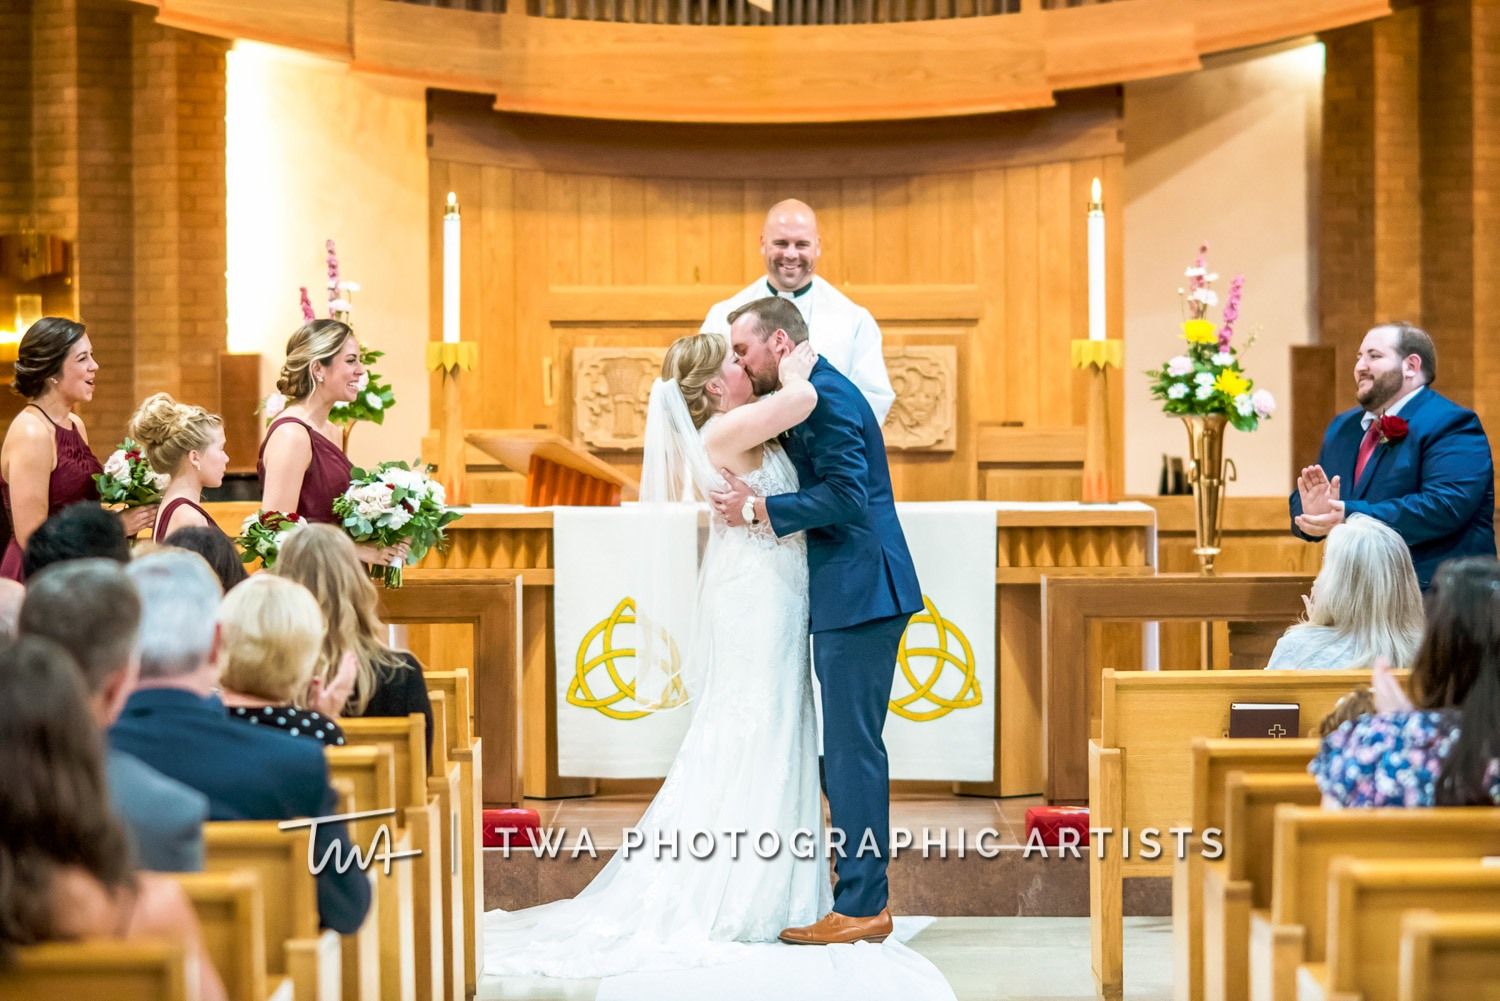 Chicago-Wedding-Photographer-TWA-Photographic-Artists-White-Pines-Banquets_Petersen_Sherman_ZZ_DL-038_0438